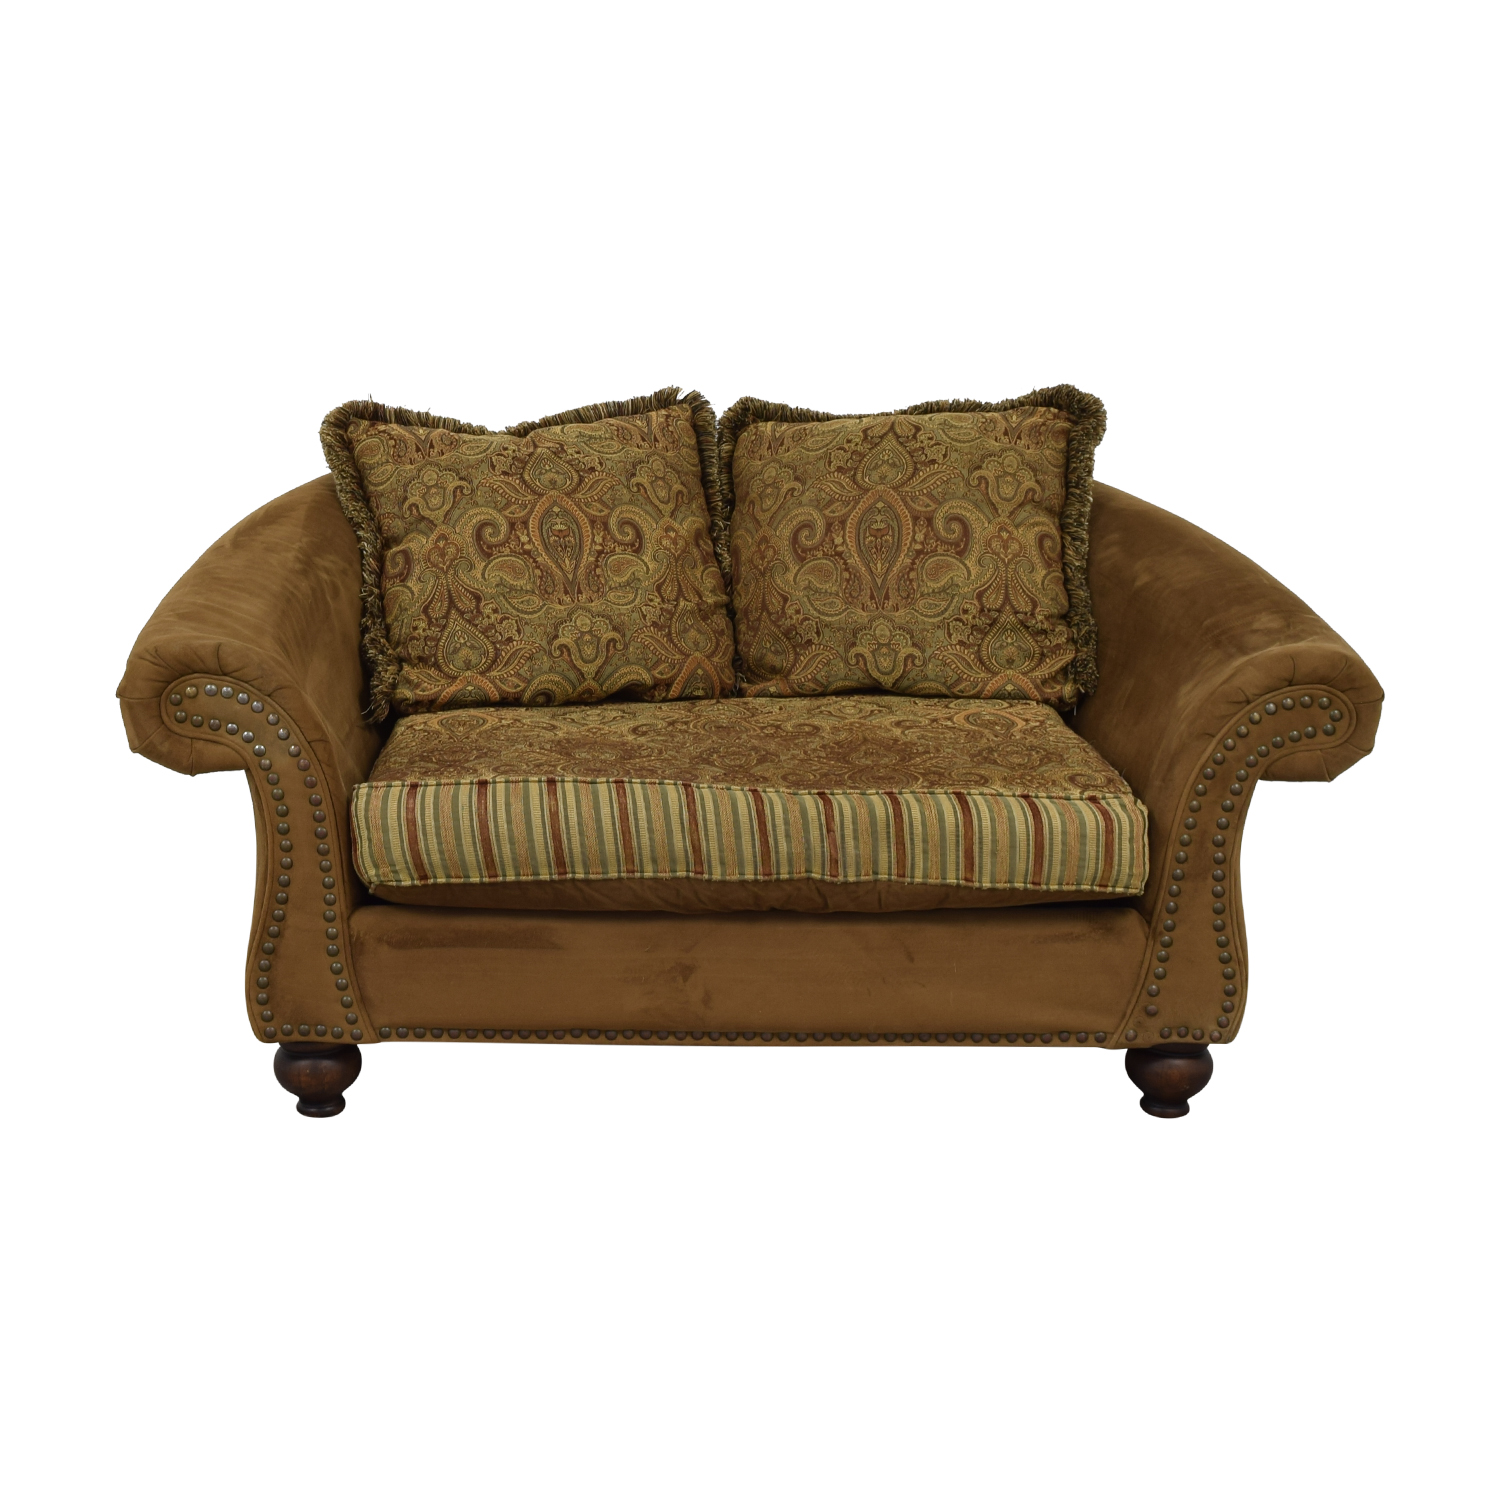 Cindy Crawford Home Cindy Crawford Home Microfiber Faux Suede Brown Nailhead Loveseat Loveseats